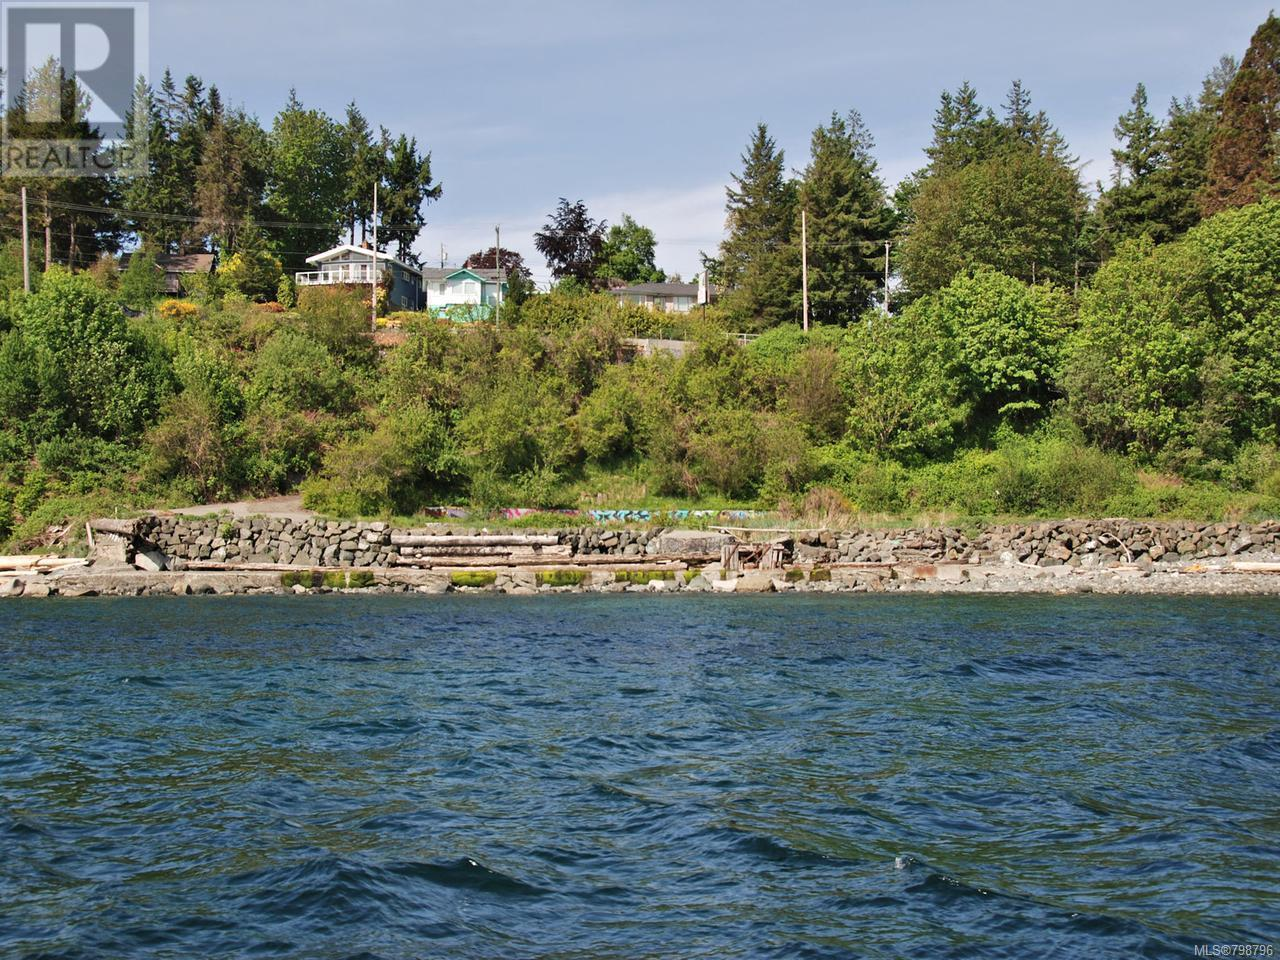 391 Island Hwy, campbell river, British Columbia